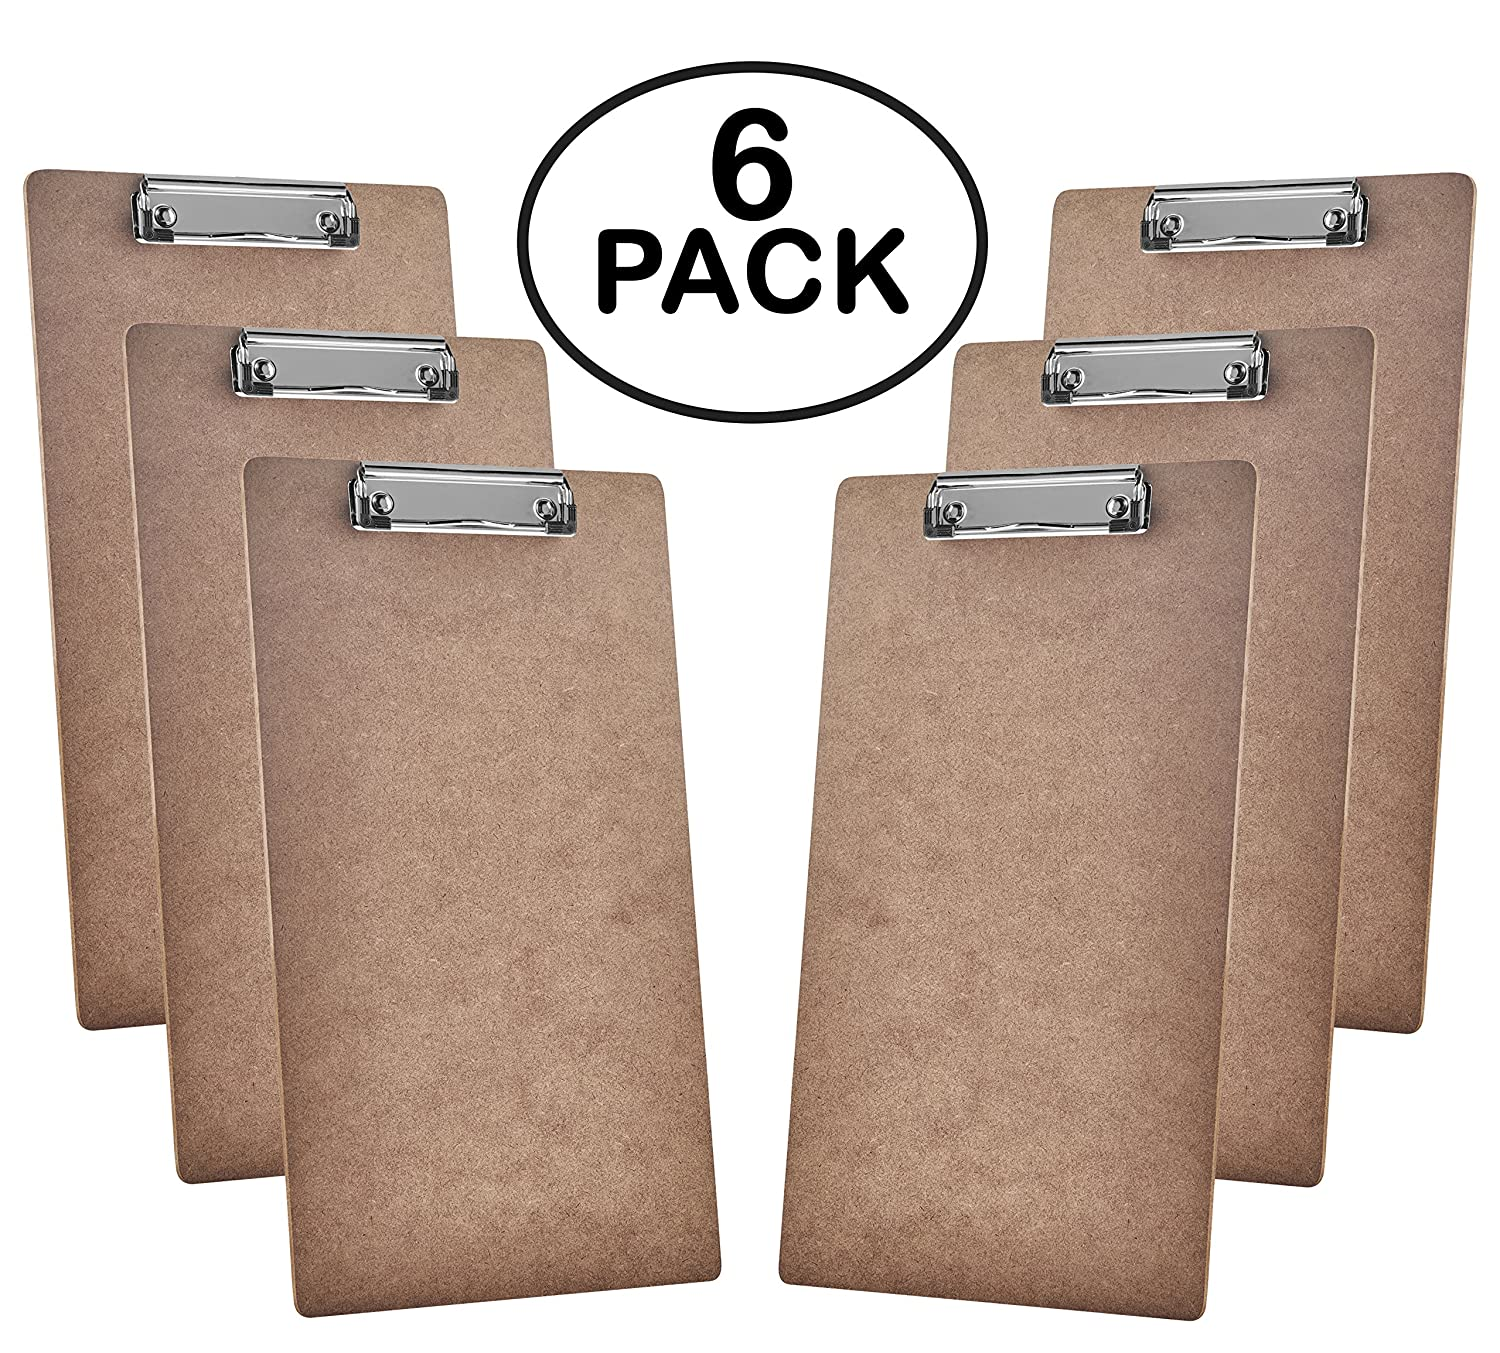 Acrimet Clipboard Legal Size Wire Clip (Hardboard) (6 Pack) 113.1